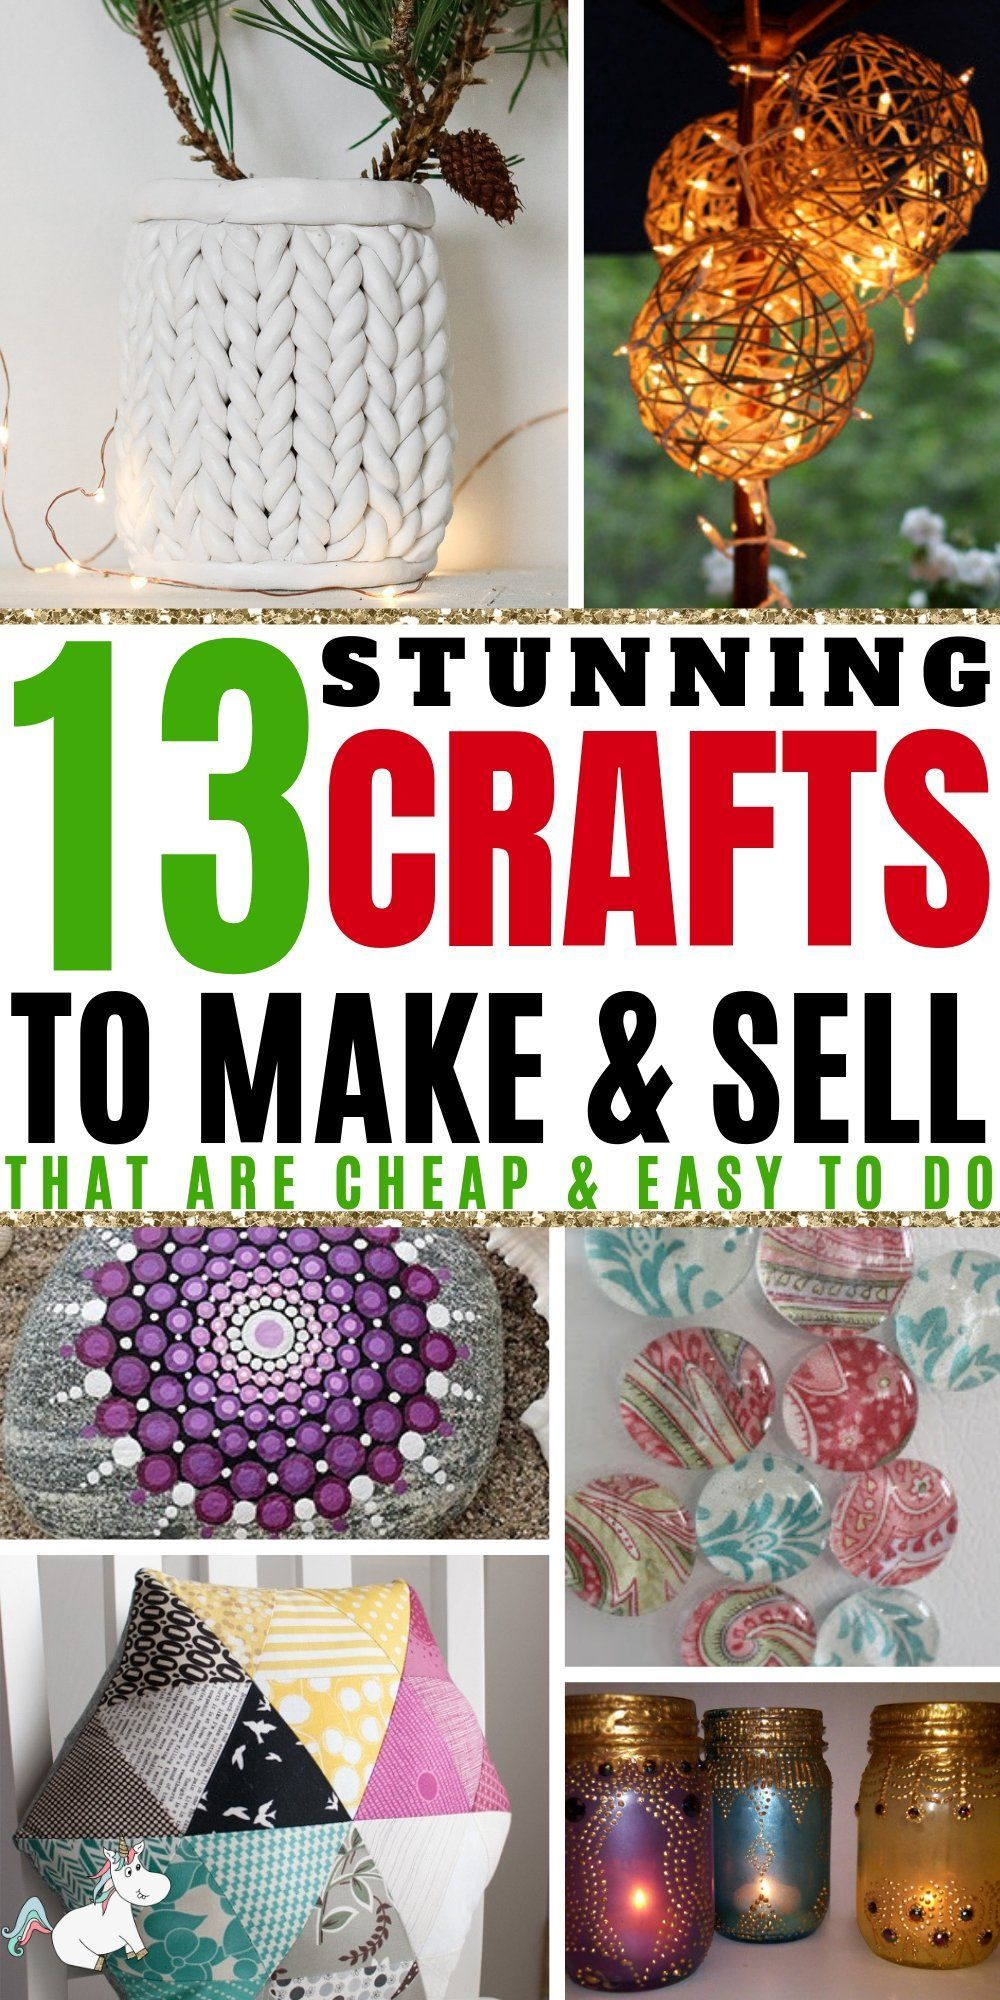 13 Amazing Easy Crafts To Make and Sell For Extra Cash! If you have…